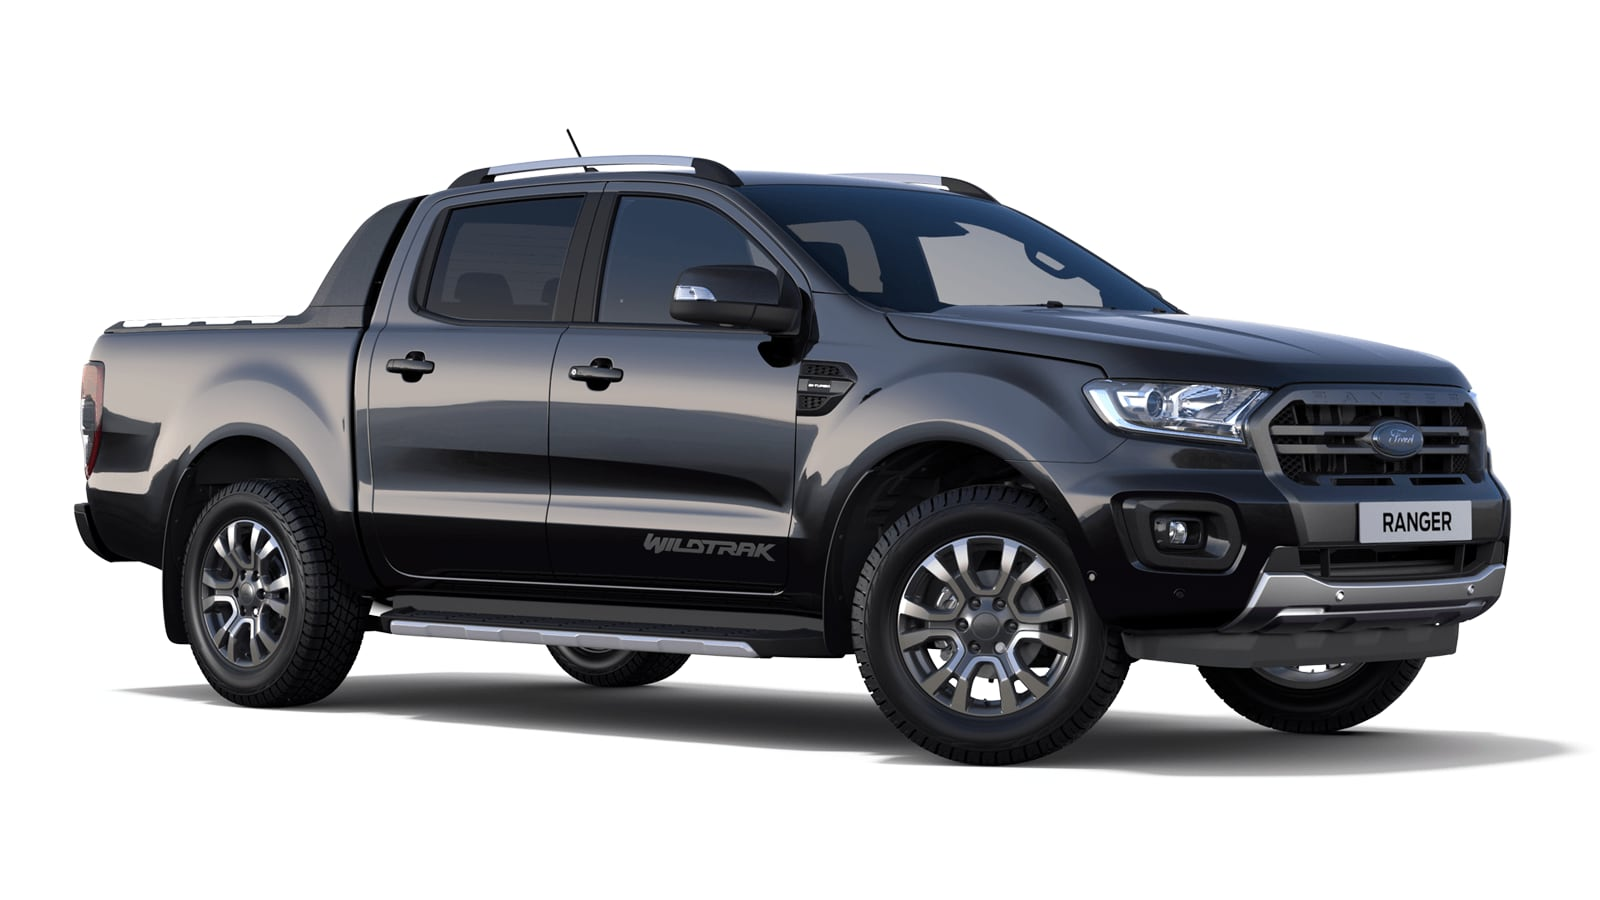 https://www.dealerinternet.co.uk/images/RANGER/2019.5/Double%20Cab/Wildtrak/SHADOW-BLACK.png